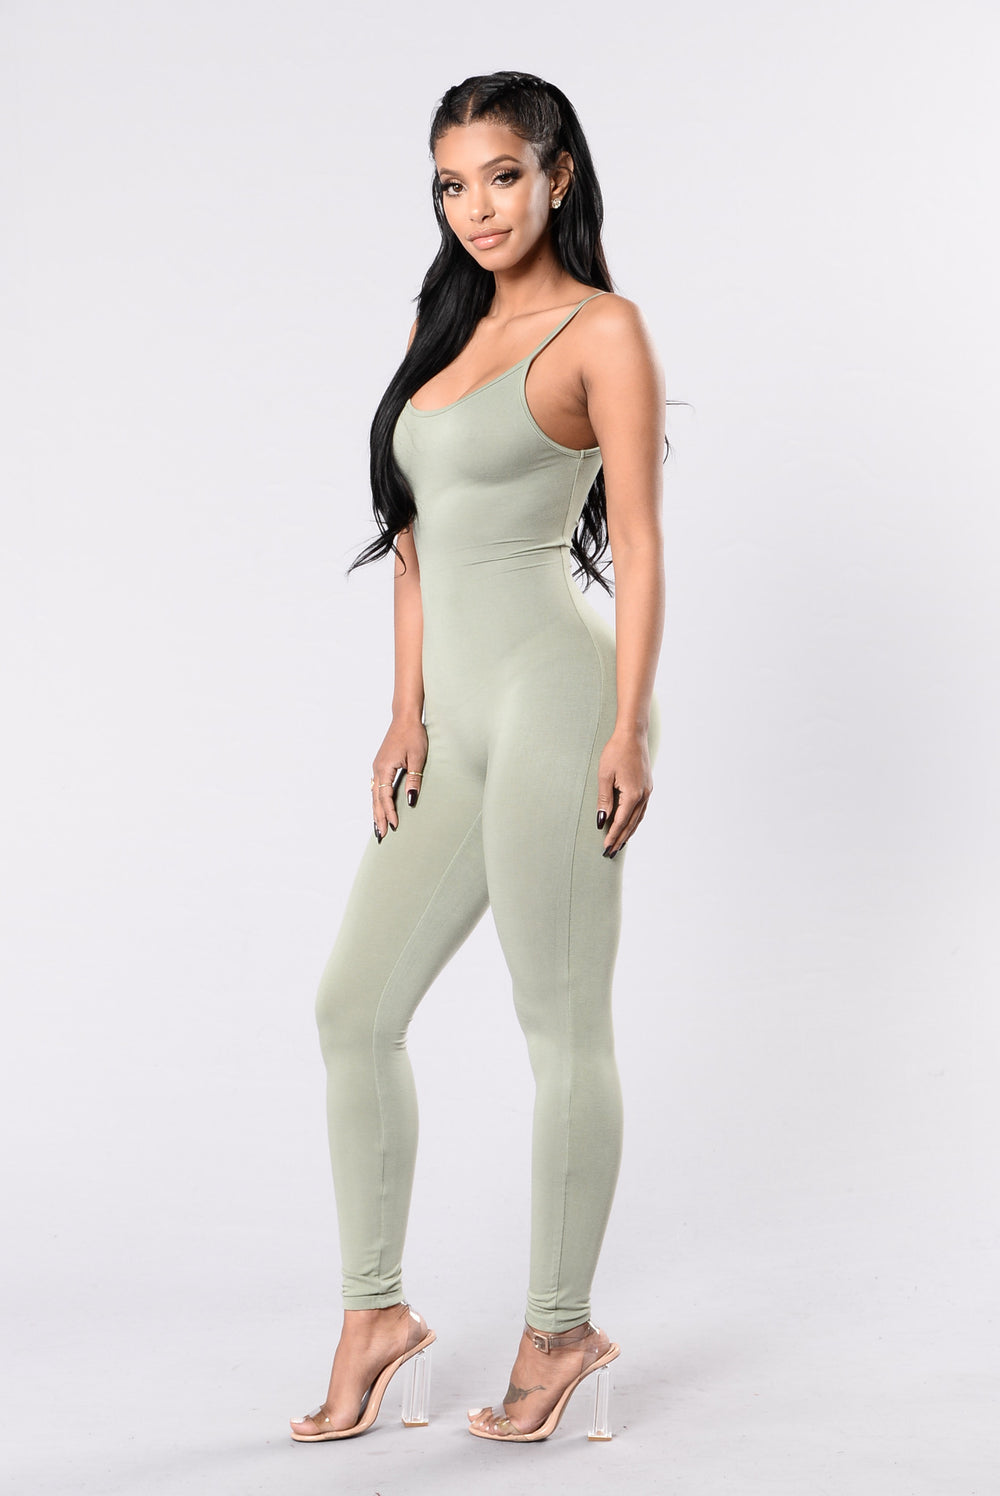 Nova Season Jumpsuit - Kale